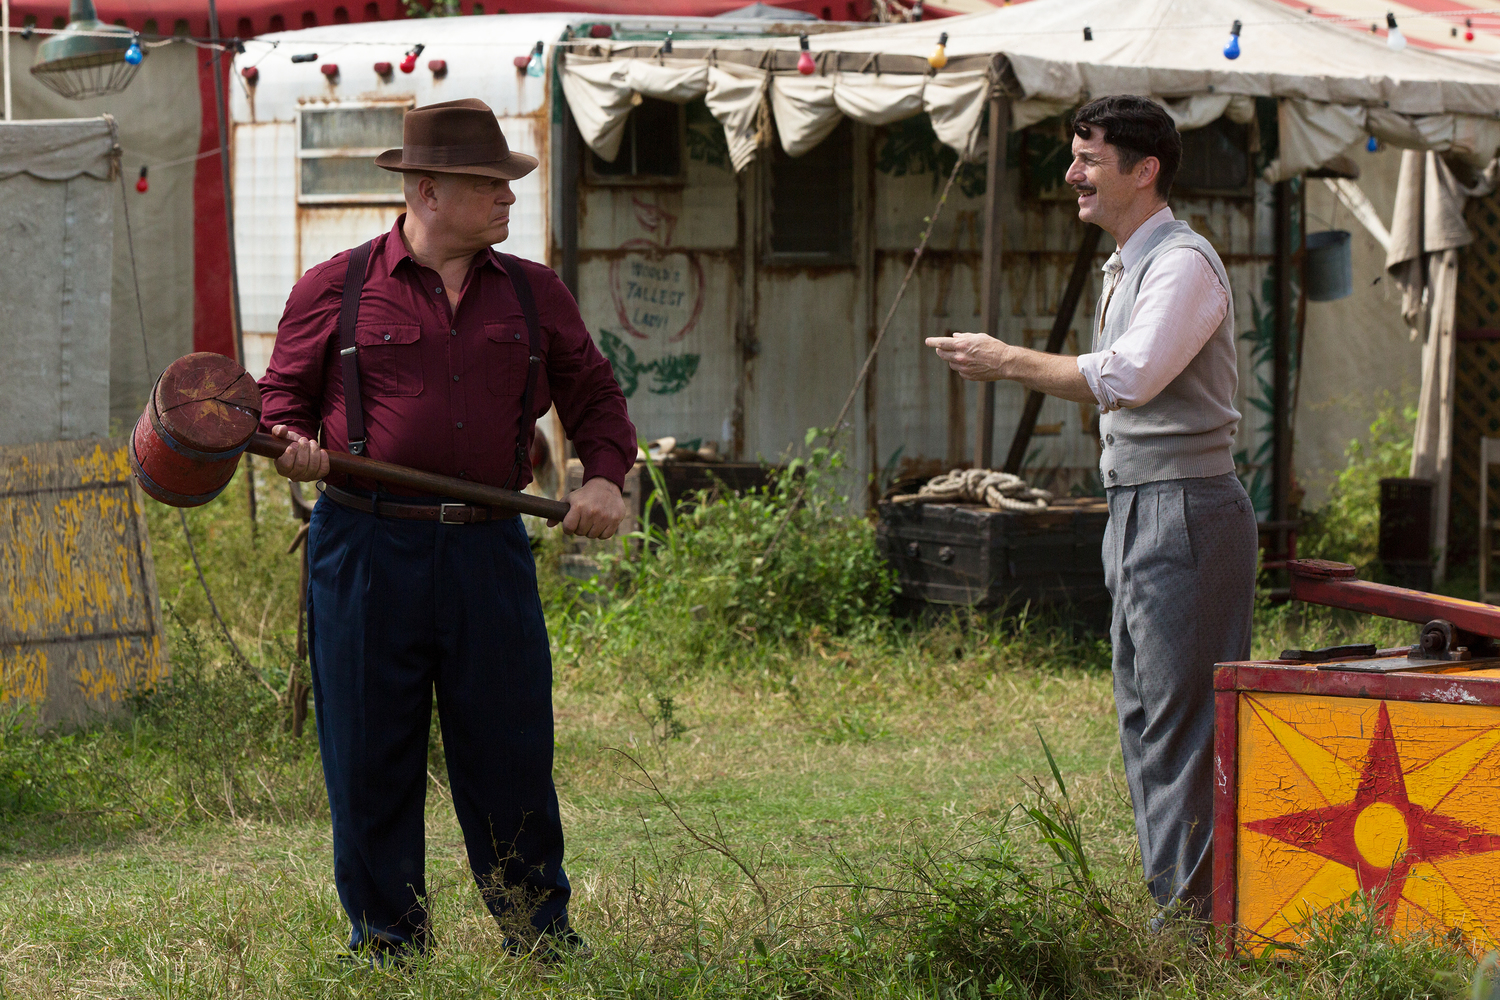 AHS 100714 0446 hires1 - American Horror Story: Freak Show 'Test of Strength' Recap